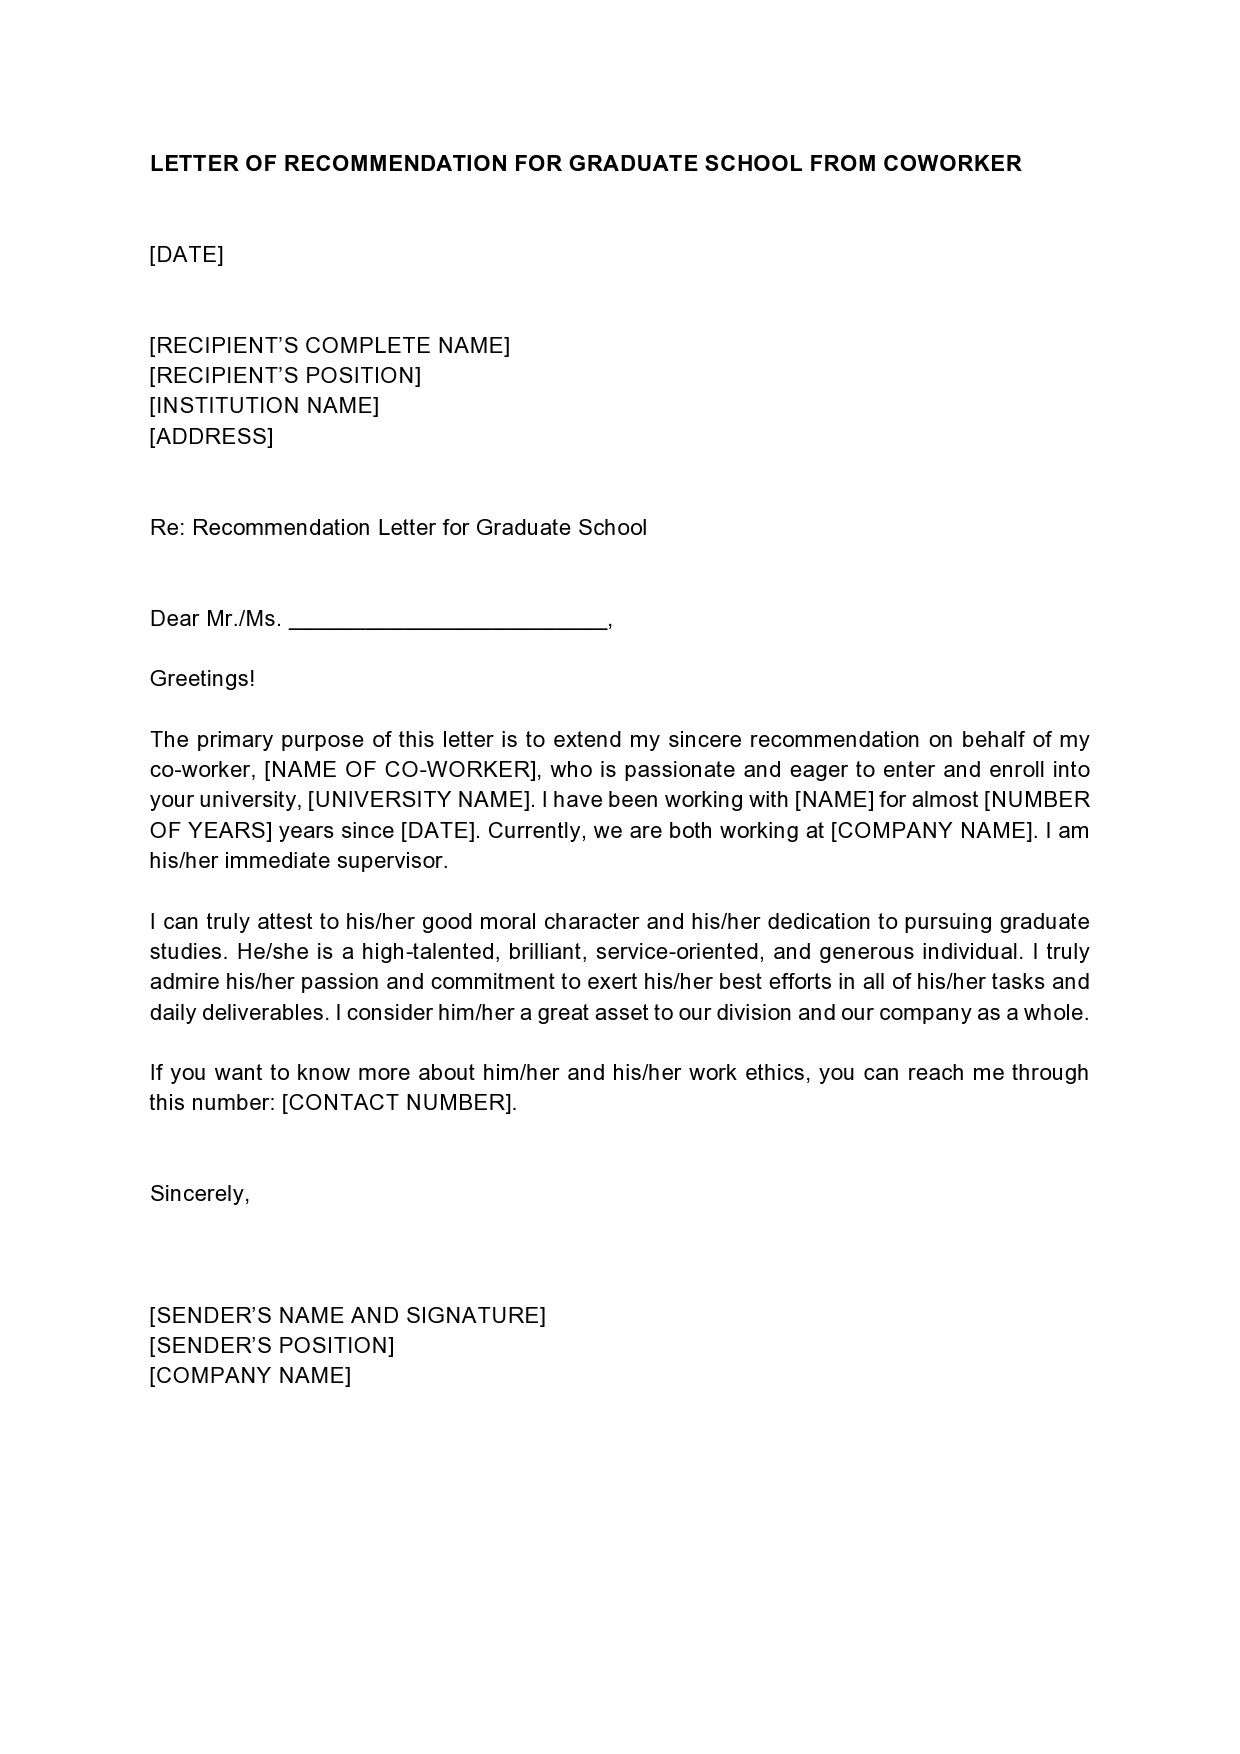 005 Striking Example Of Letter Recommendation For Graduate School From Employer High Def  Sample Pdf GradFull